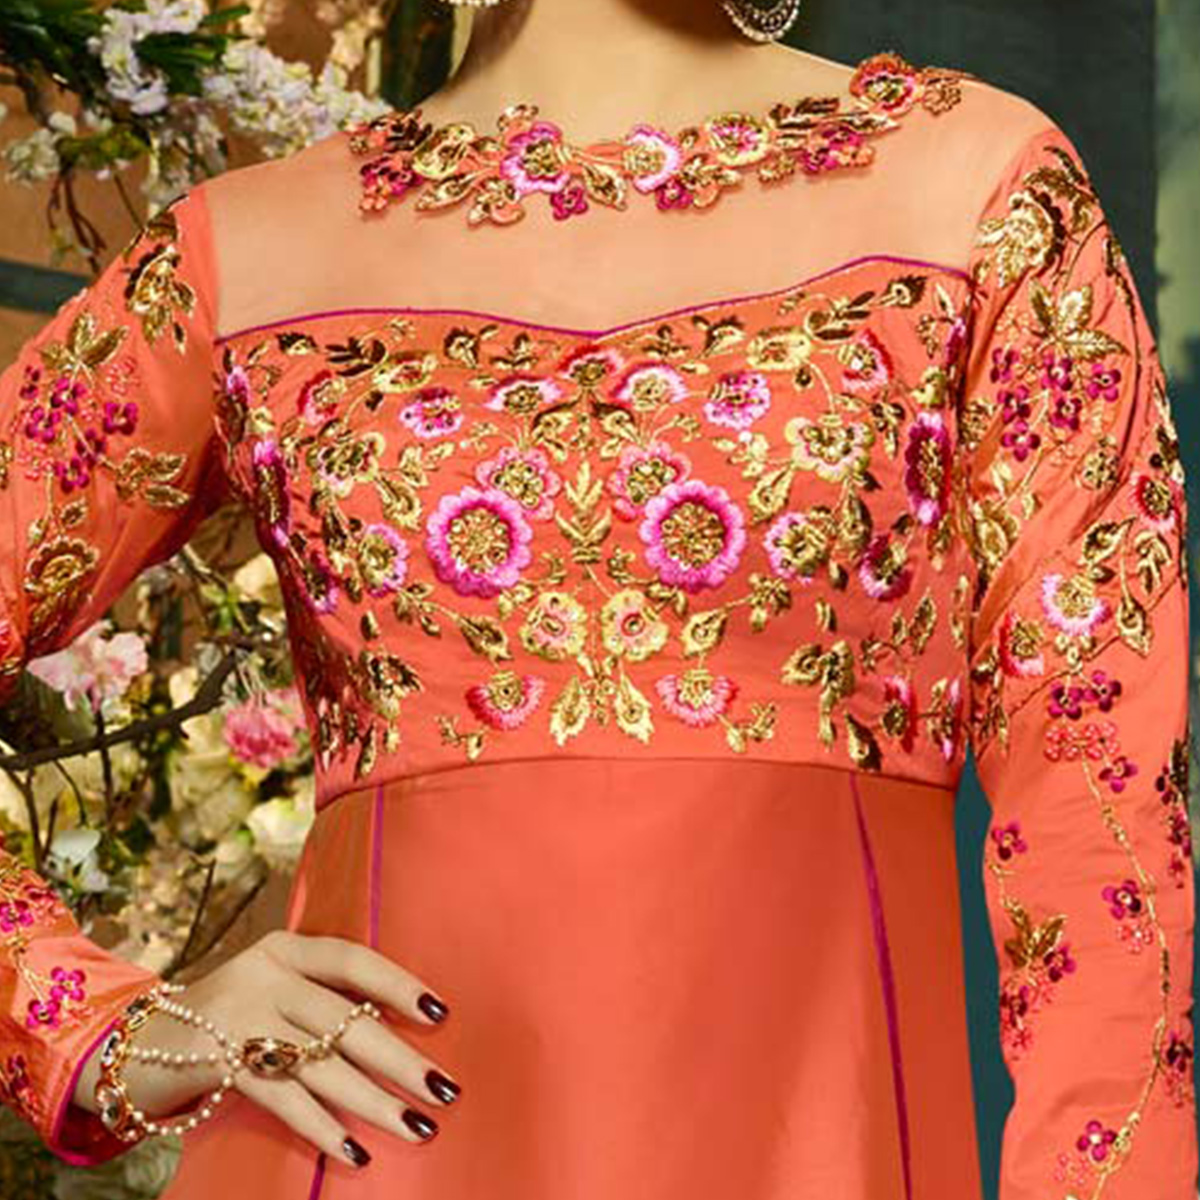 Engrossing Orange-Pink Colored Designer Embroidered Tapeta Silk Lehenga Kameez